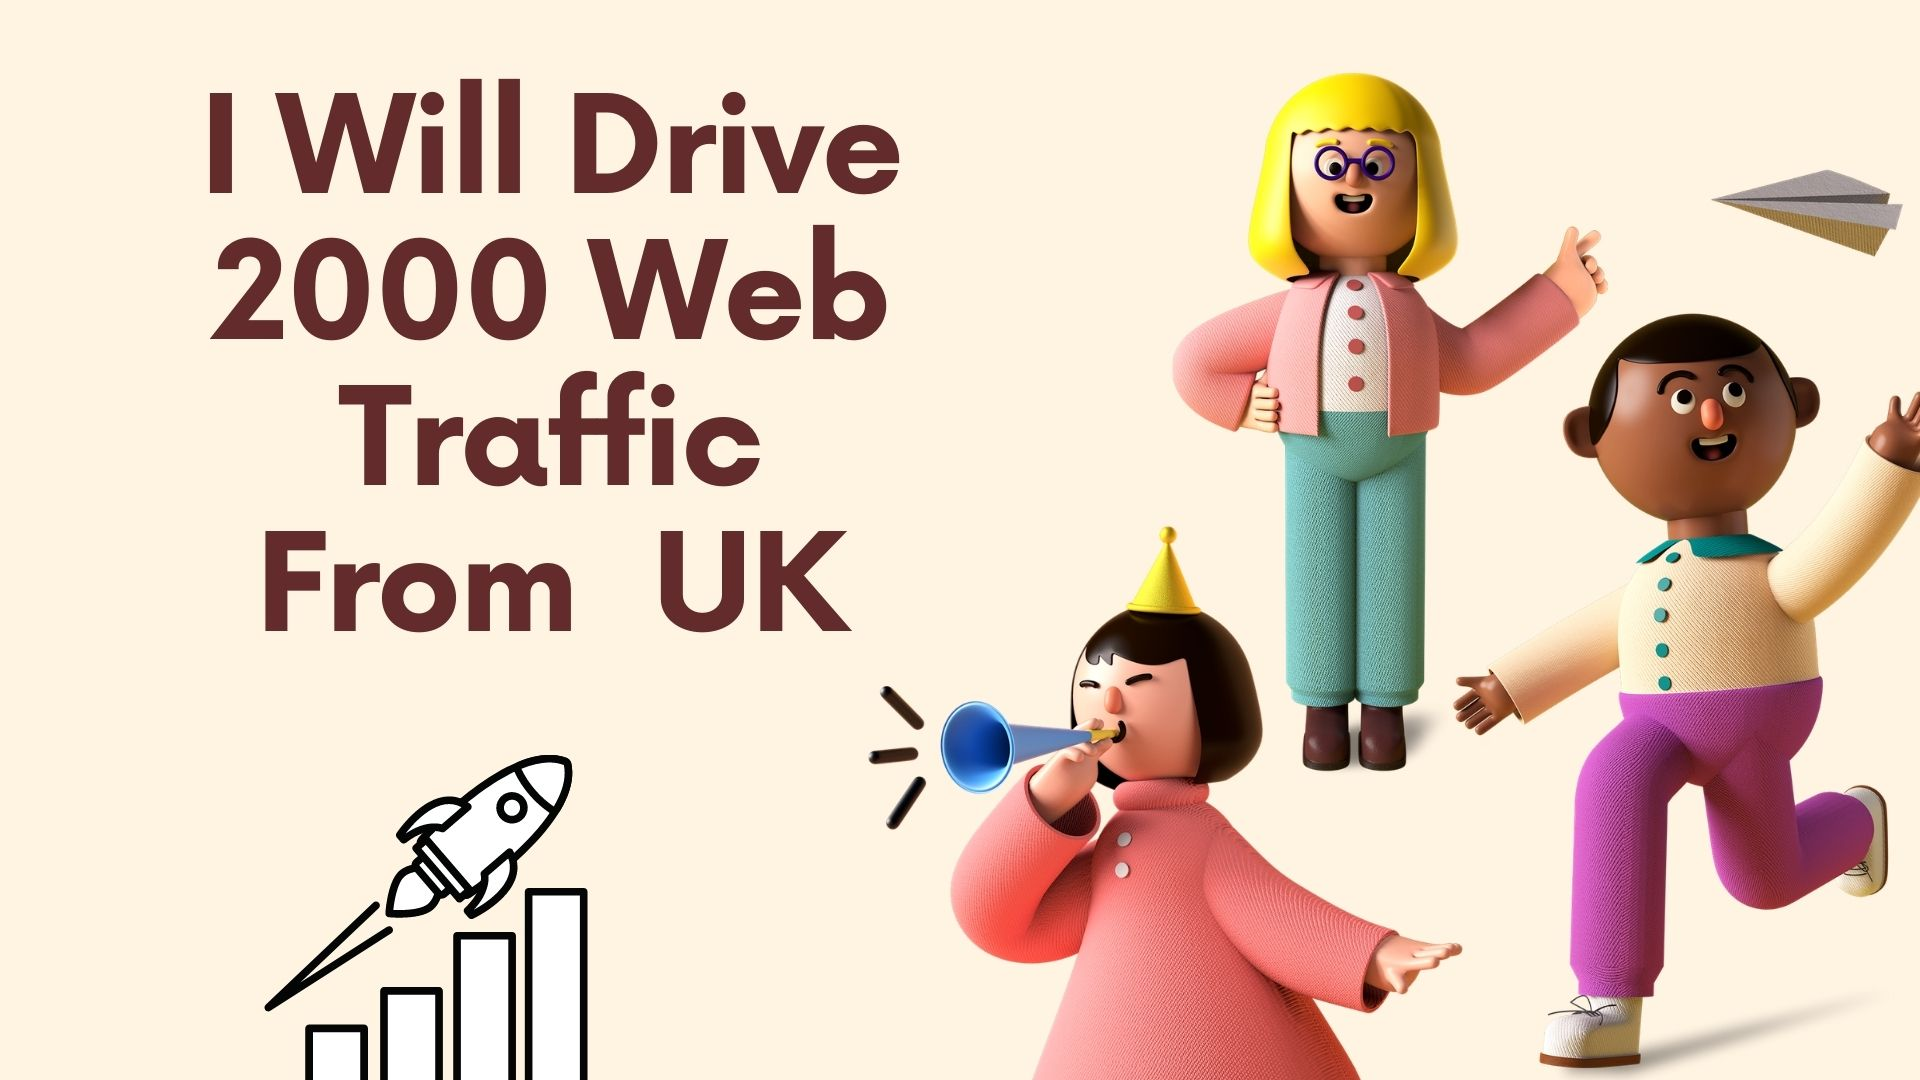 I Will Drive 2000 Web Traffic From UK